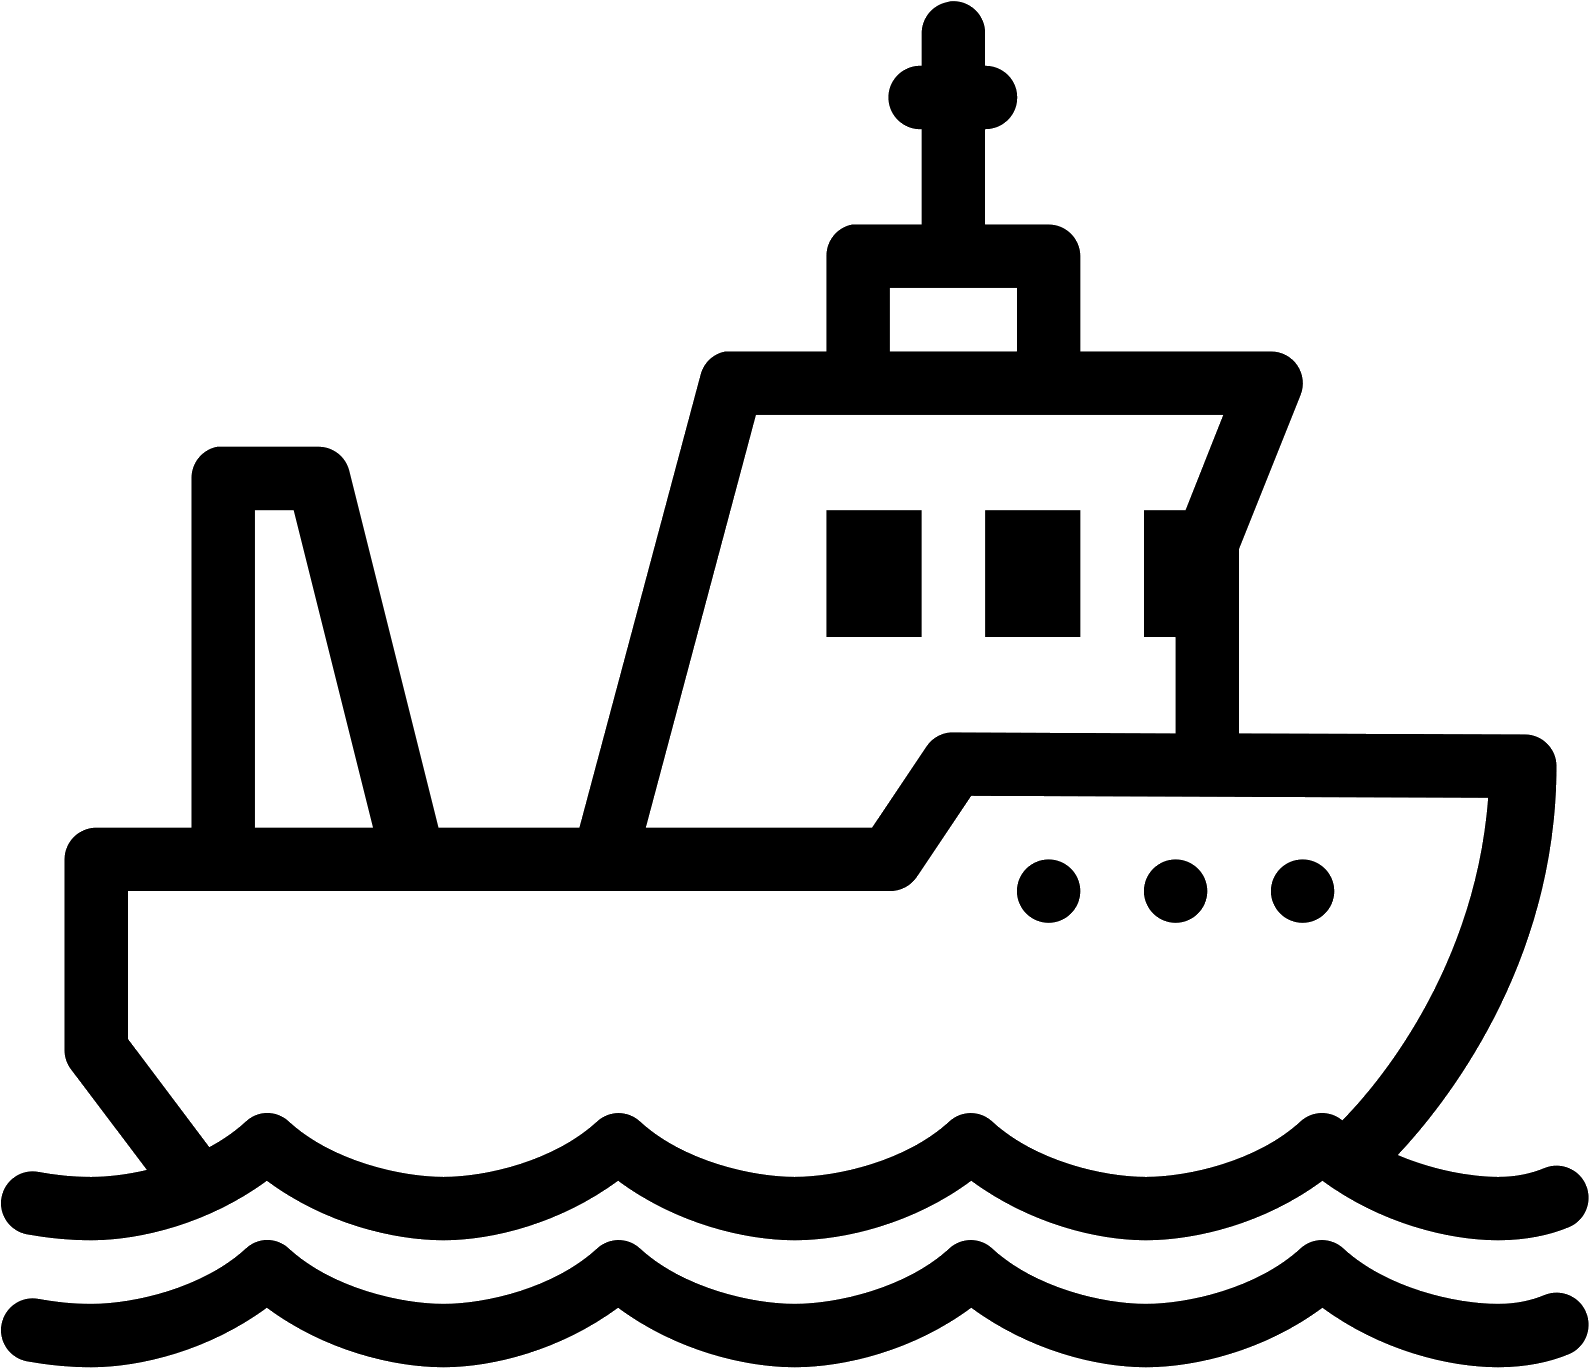 hight resolution of fishing boat clipart svg architecture vector icon fishing boat icon clipart